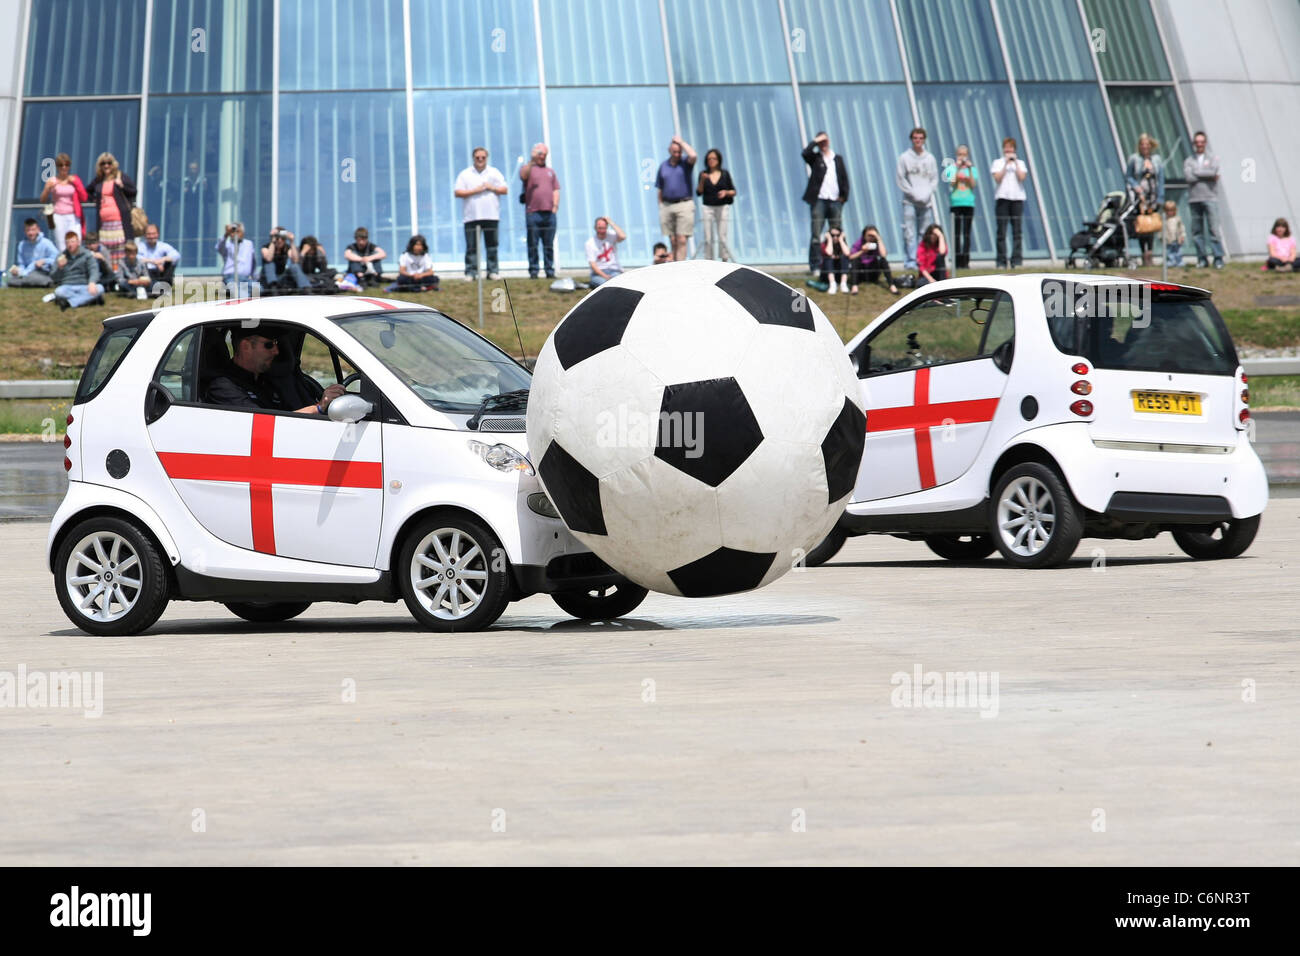 Smart Footie England takes on the rest of the world as eight smart cars entertain the crowds at Mercedes-Benz World - Stock Image